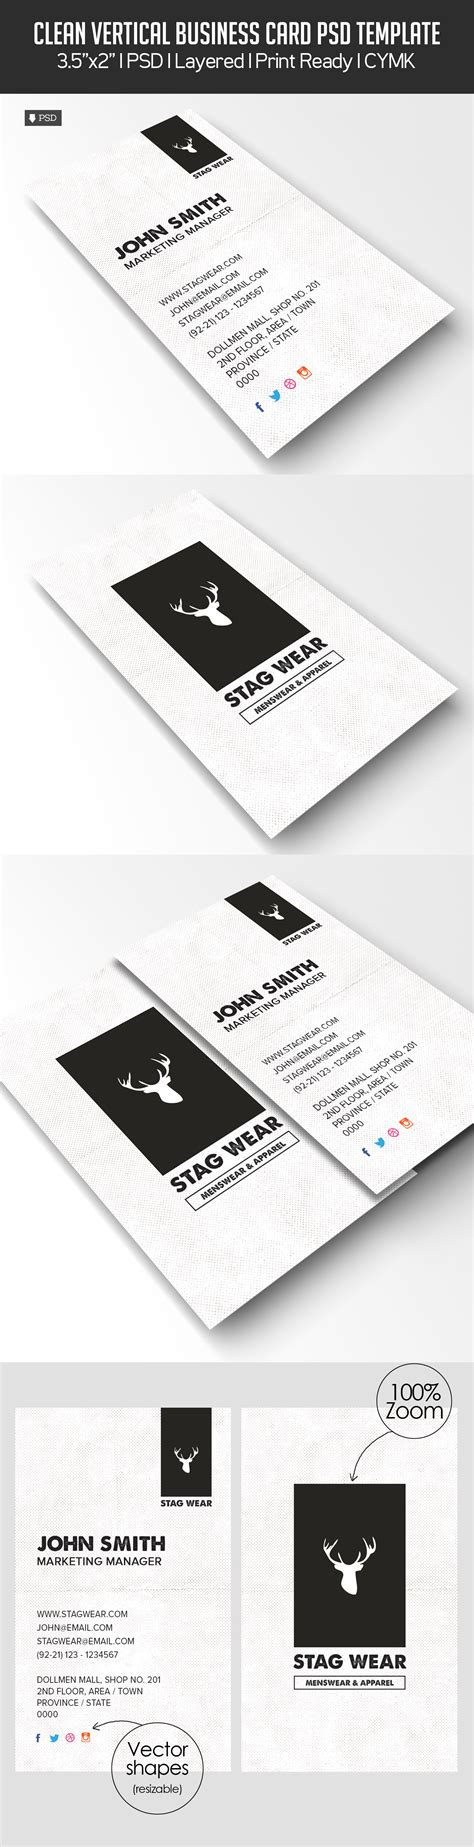 business cards vertical template freebie vertical business card psd template freebies